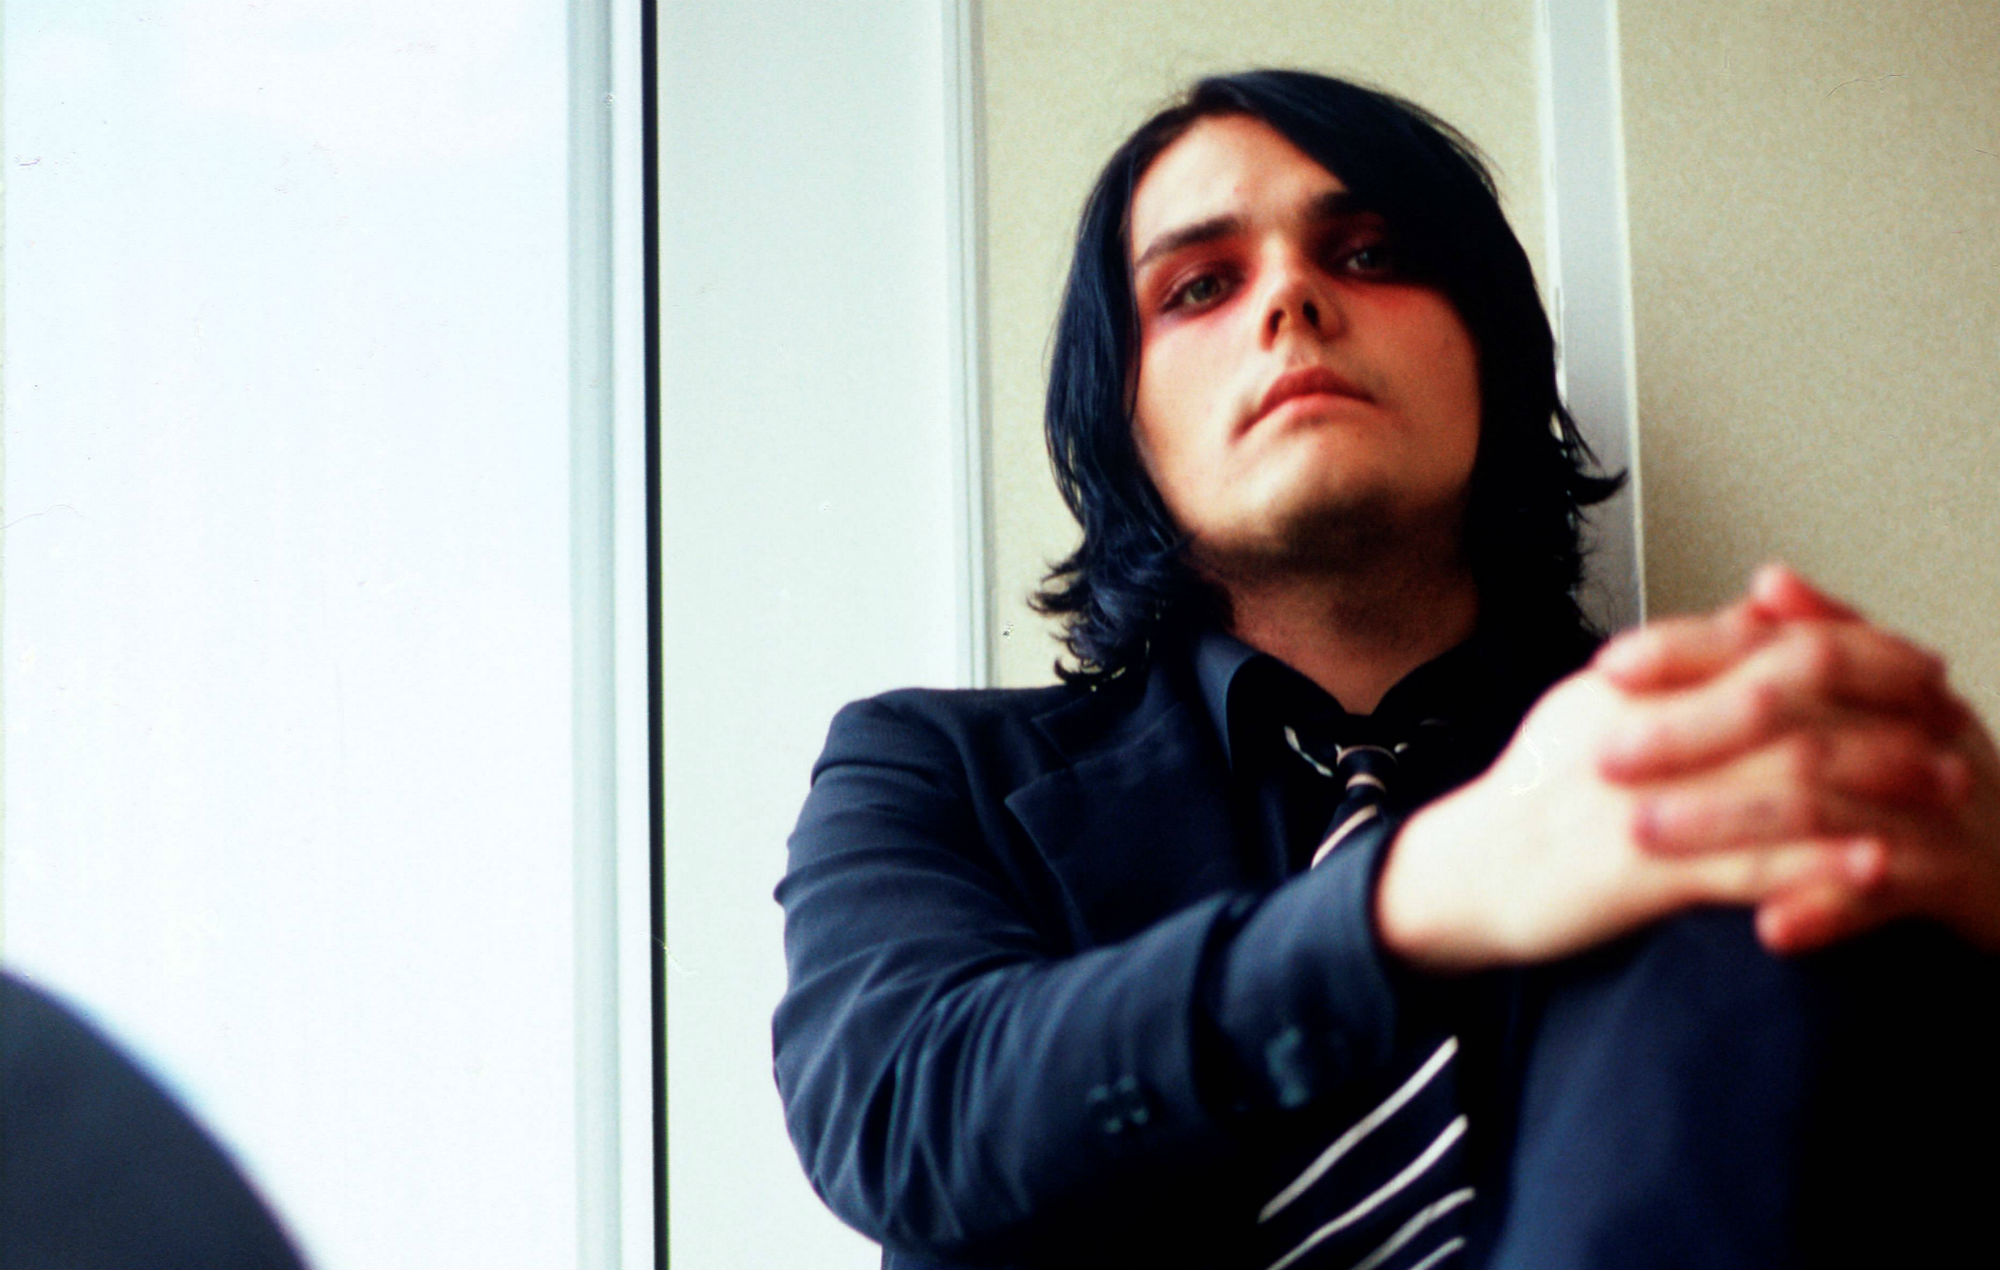 My Chemical Romance have reunited – here's why it's great